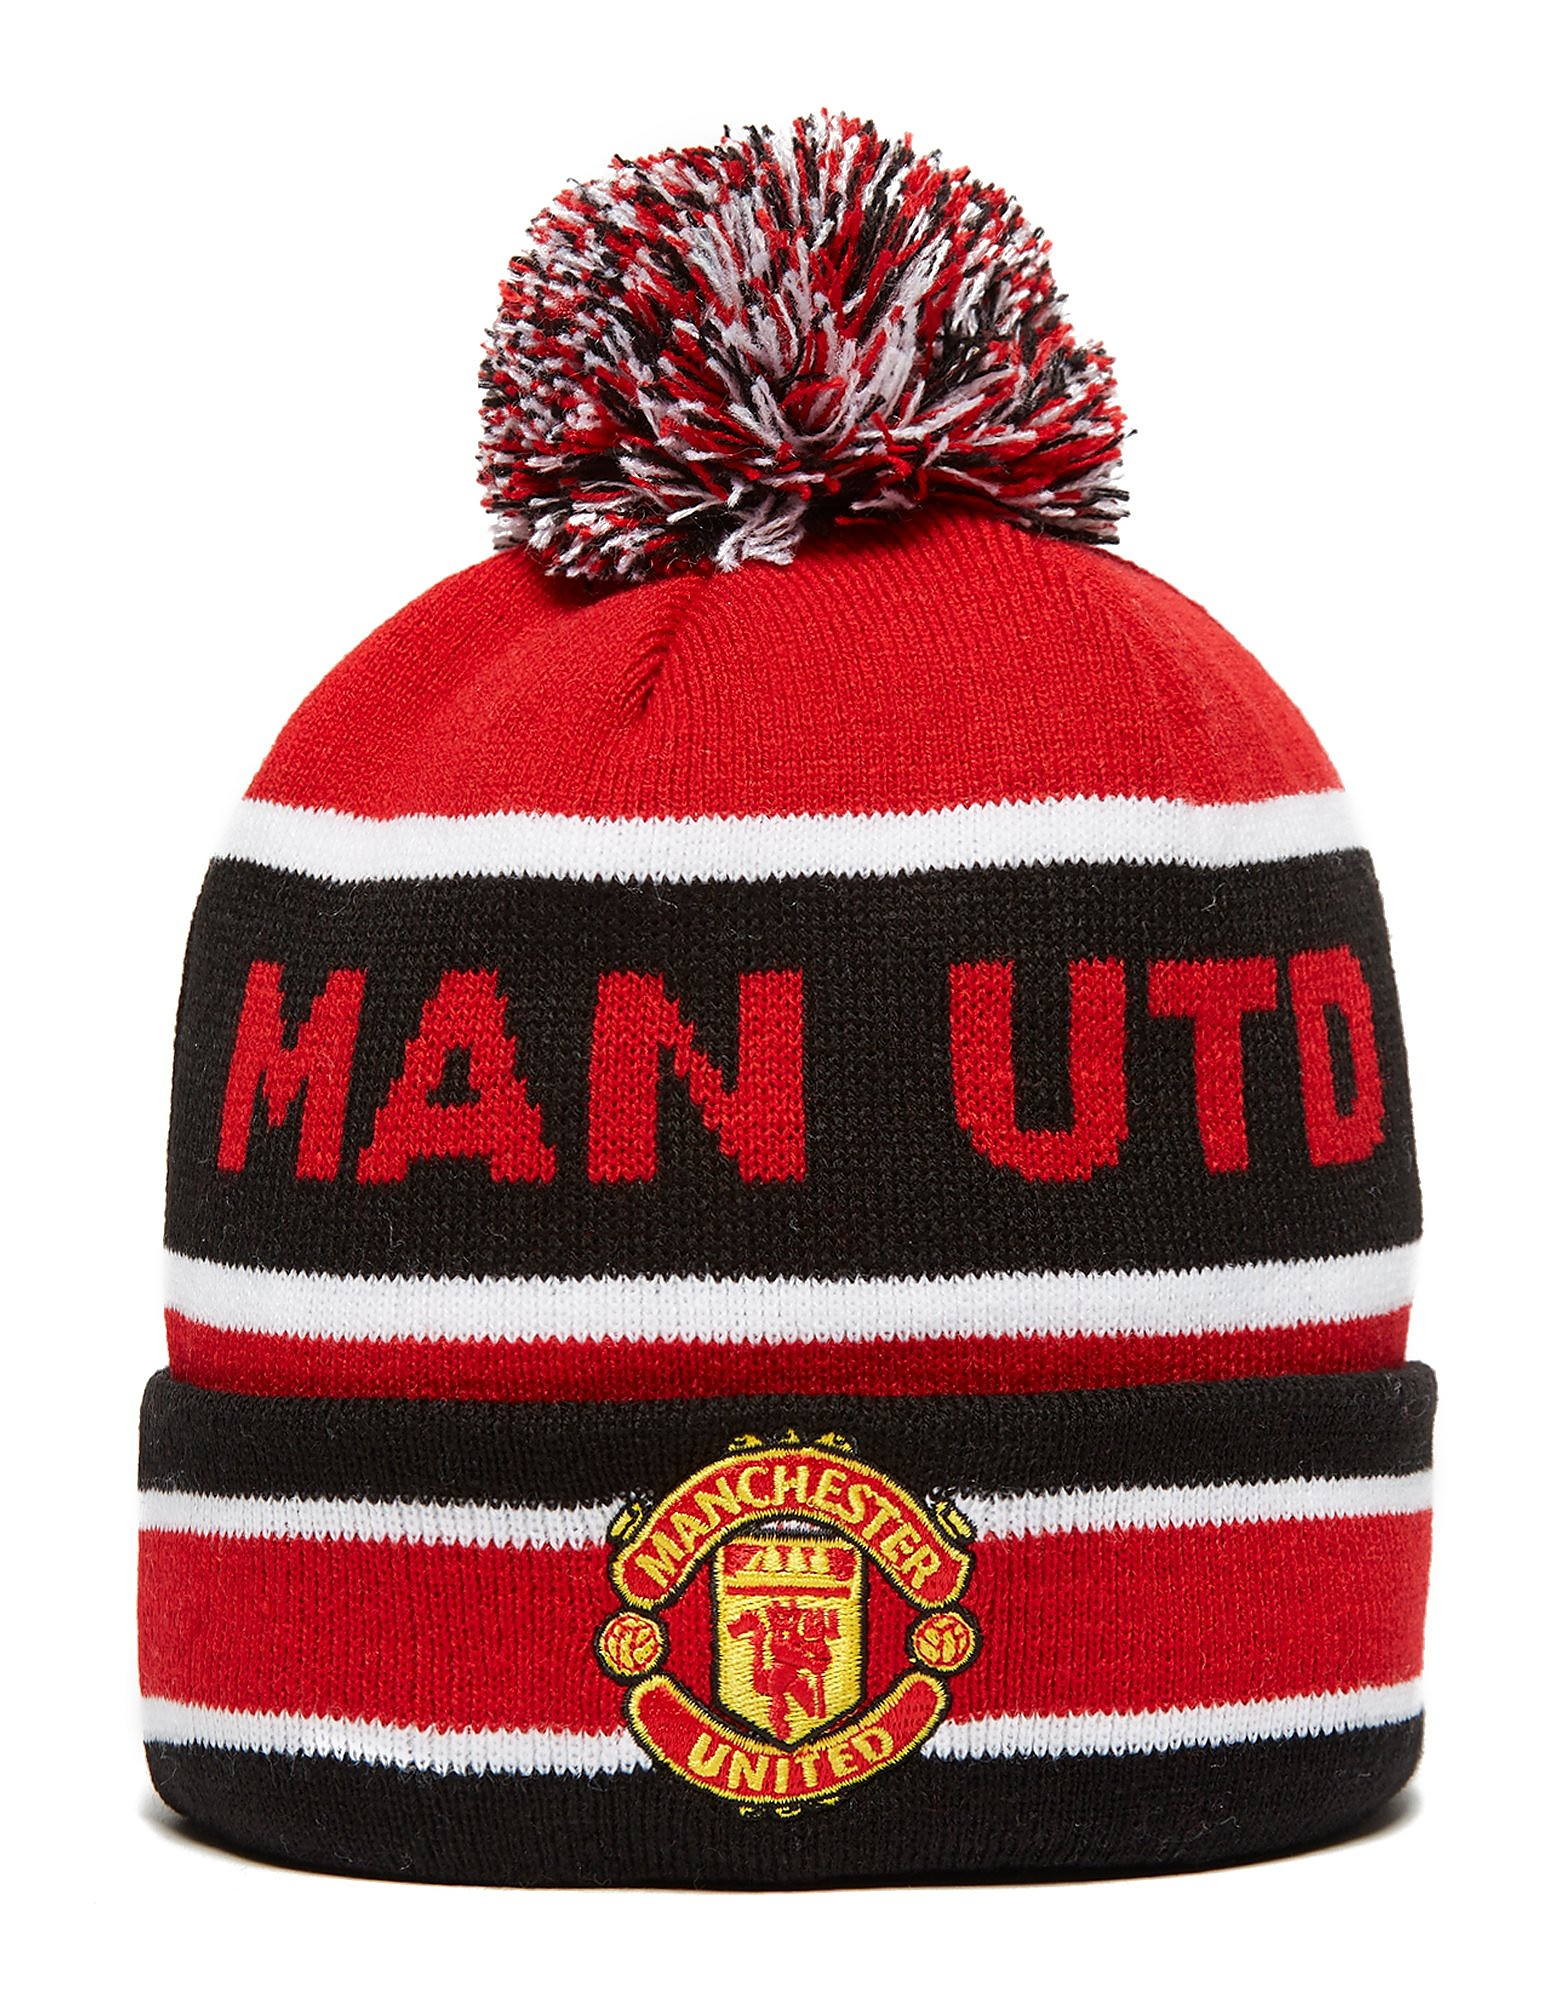 New Era Bonnet à pompon tricoté Manchester United de Jake